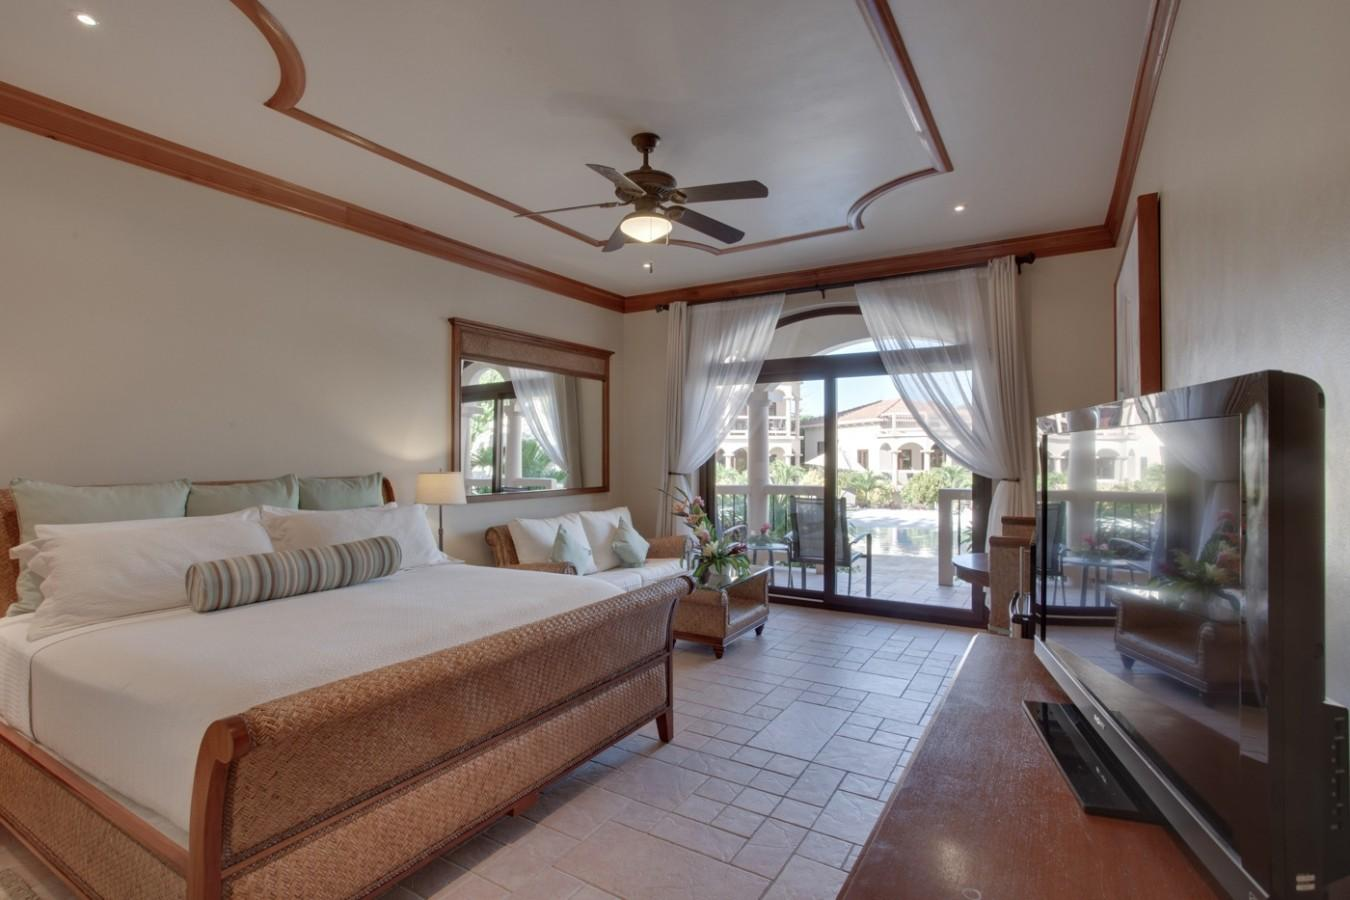 Luxury Hotel Rooms Coco Beach Resort